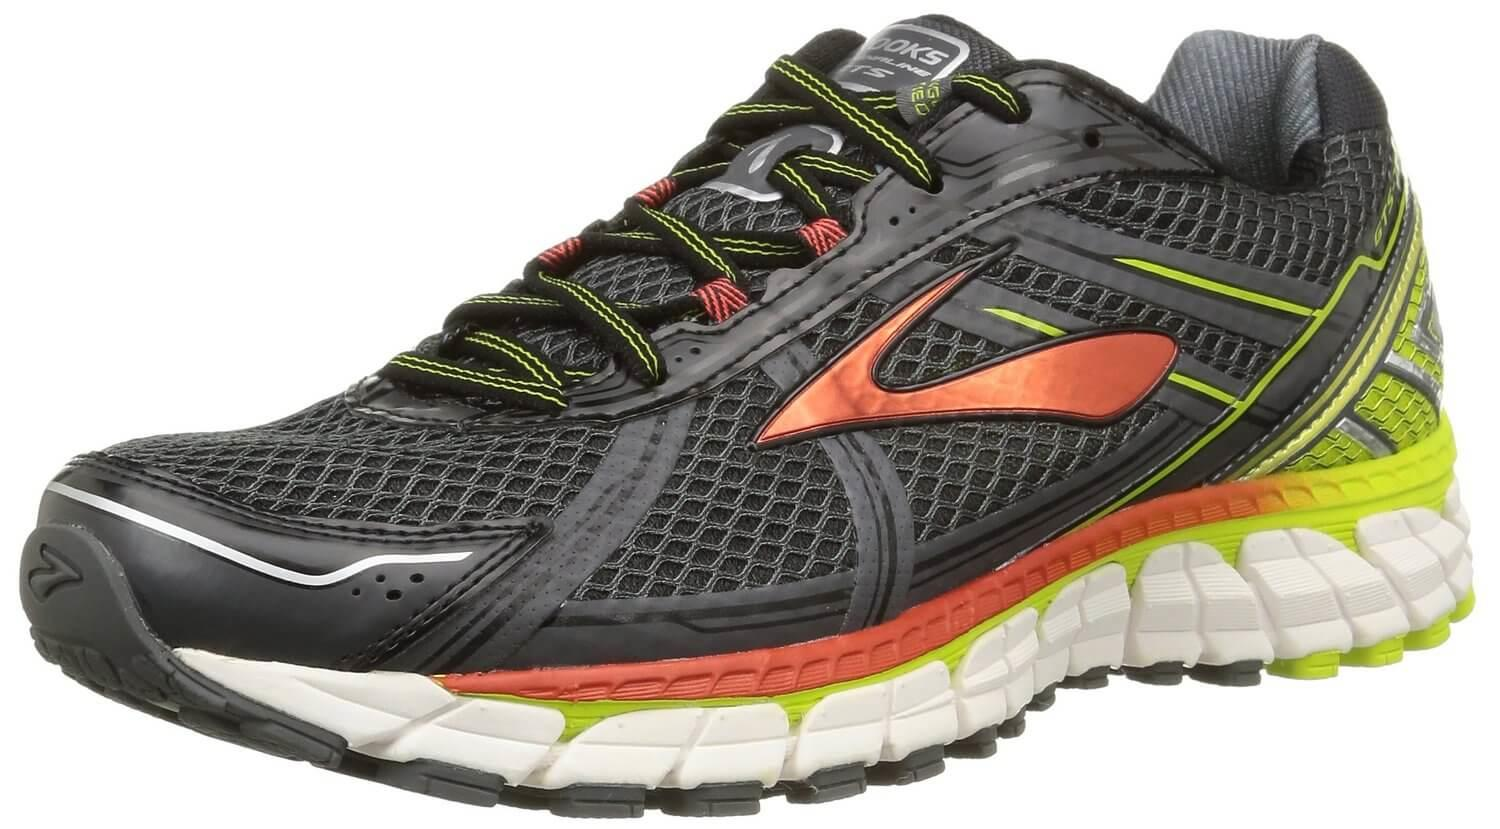 003c50b72b3 Brooks Adrenaline GTS 15ed for Quality - in May 2019